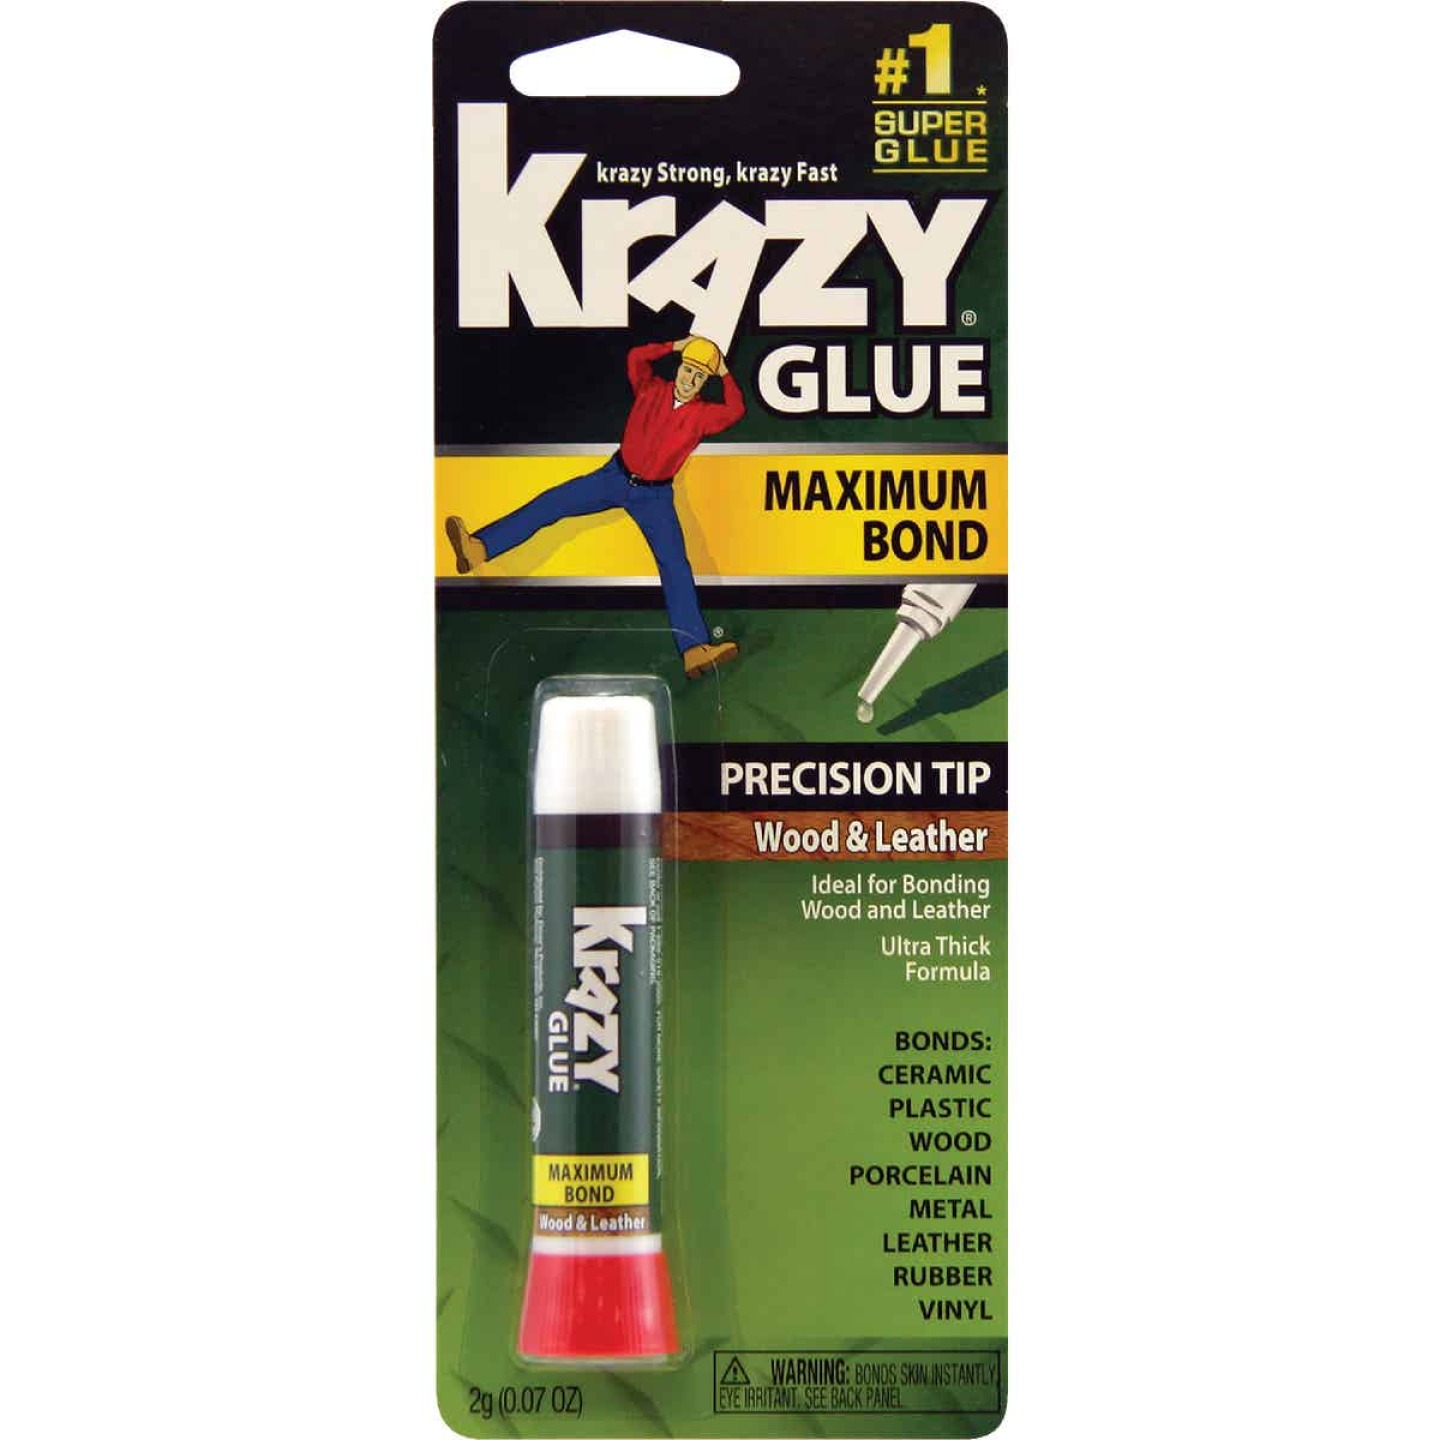 Krazy Glue 0.07 Oz. Maximum Bond Wood Leather Super Glue with Precision Tip Image 1